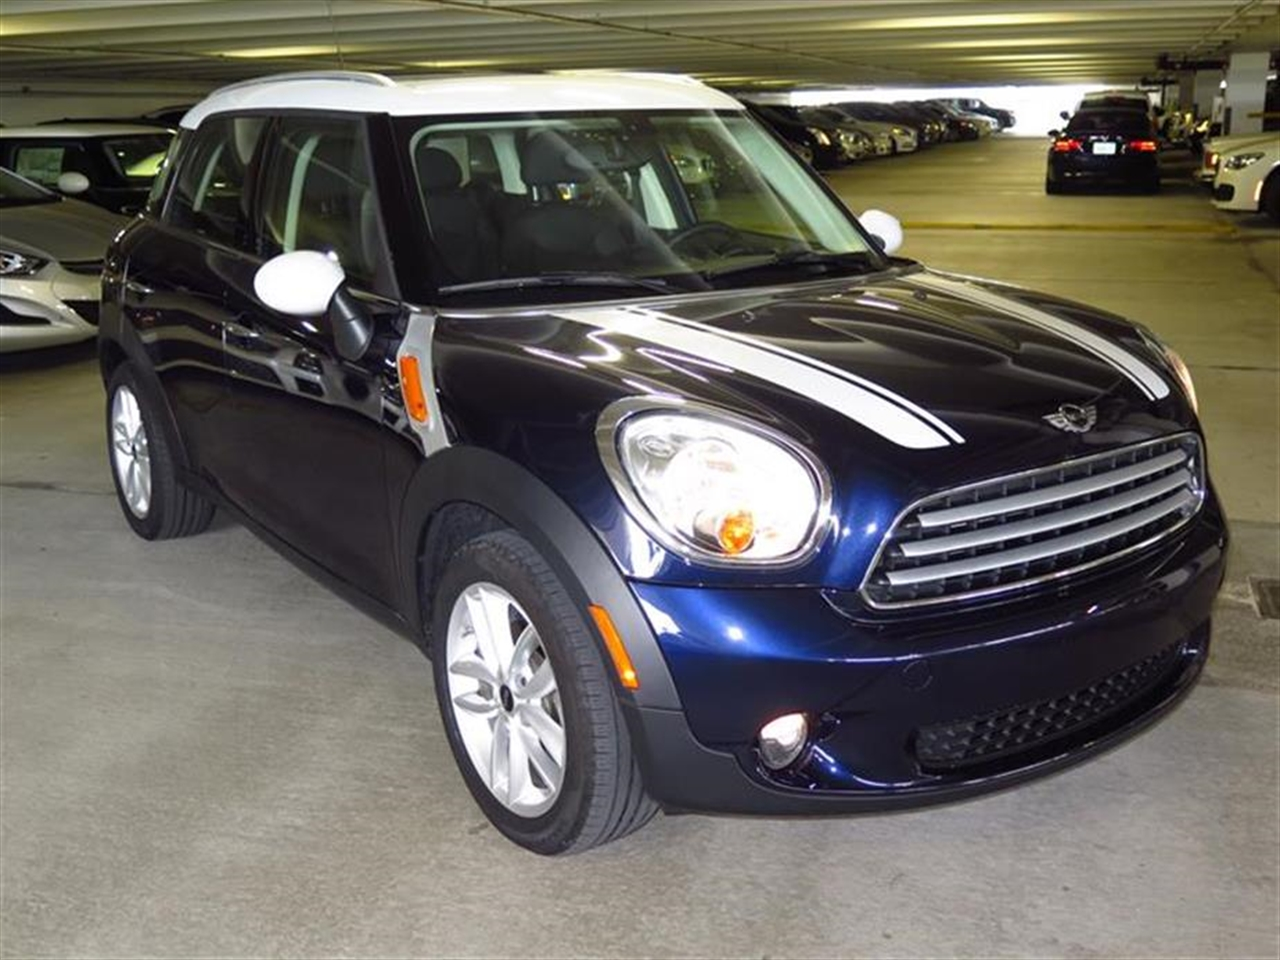 2013 MINI COOPER COUNTRYMAN FWD 4dr 29876 miles 2 front cup holders 3 12V pwr outlets 3 r